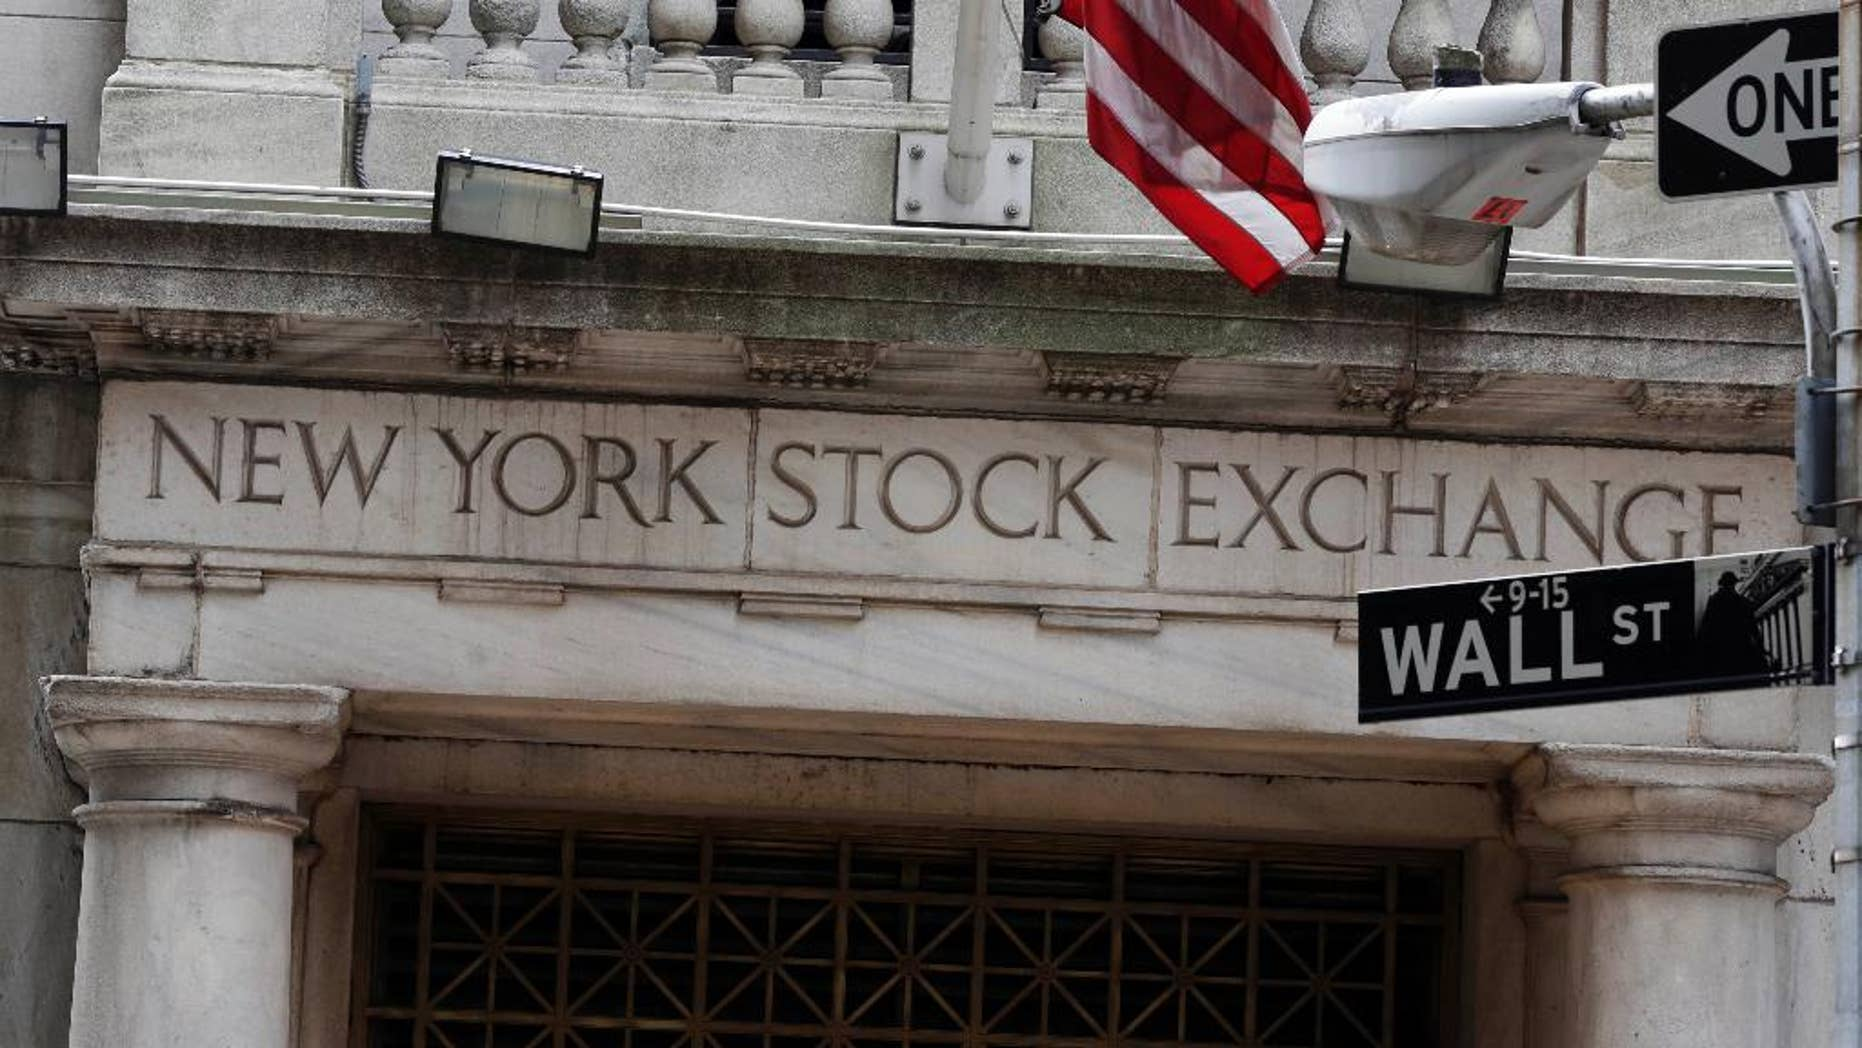 FILE - This Thursday, Oct. 2, 2014, file photo, shows the Wall Street entrance of the New York Stock Exchange. U.S. and global stocks fell Tuesday, Dec. 30, 2014, as investors closed their positions ahead of the New Year and amid concern over political uncertainty in Greece. (AP Photo/Richard Drew)